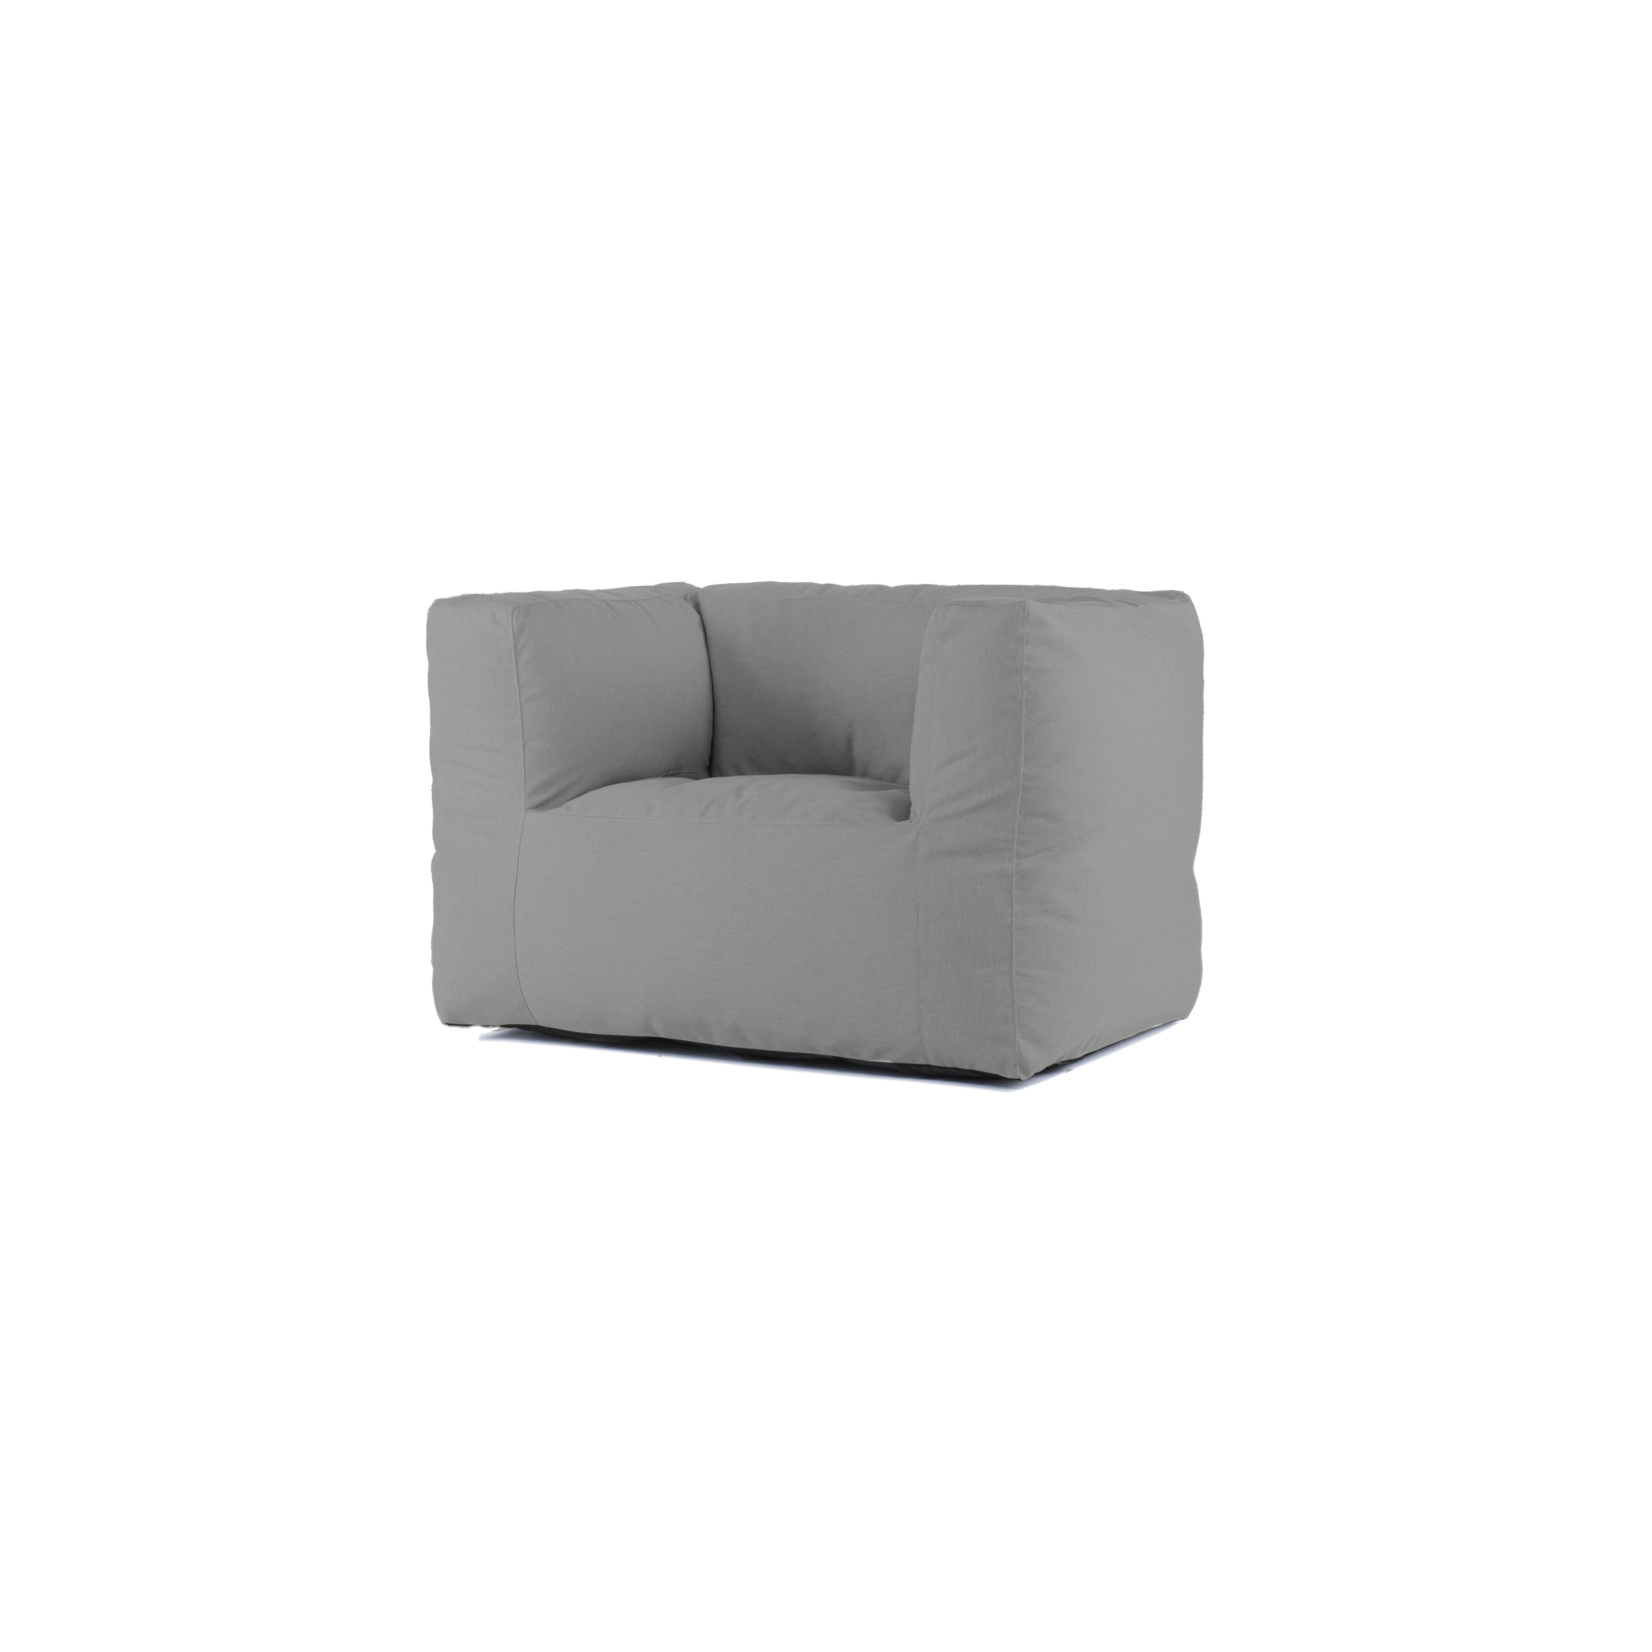 Bryck Bryck Chair   One seat   SMOOTH COLLECTION